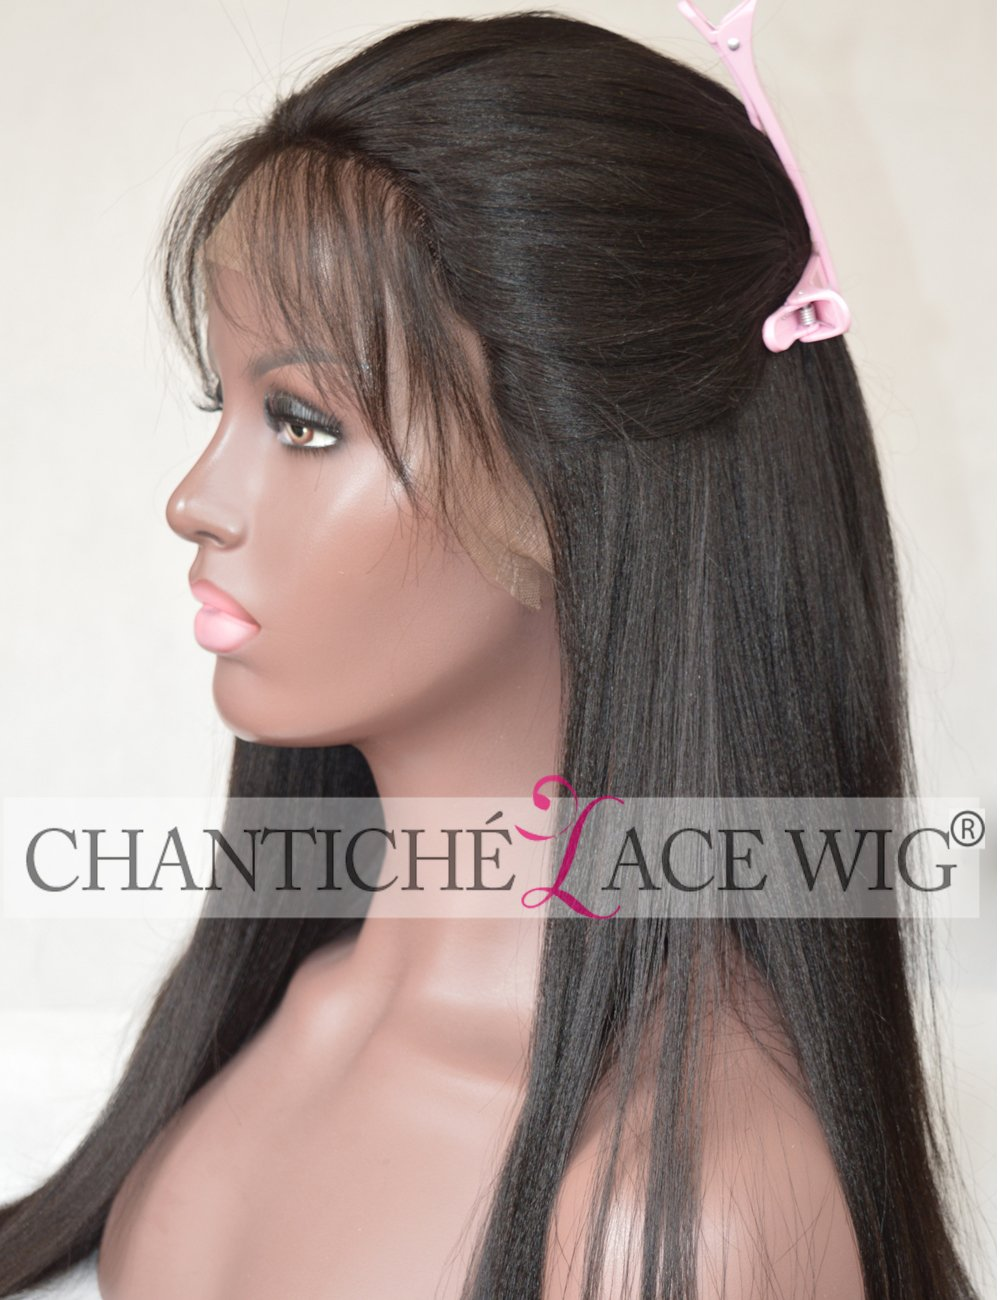 Chantiche Glueless Light Yaki Straight Silk Top Lace Front Human Hair Wig for Black Women Natural Looking 100 Real Brazilian Human Hair Full Wigs with Baby Hair 130 Density 12 Inches Natural Color